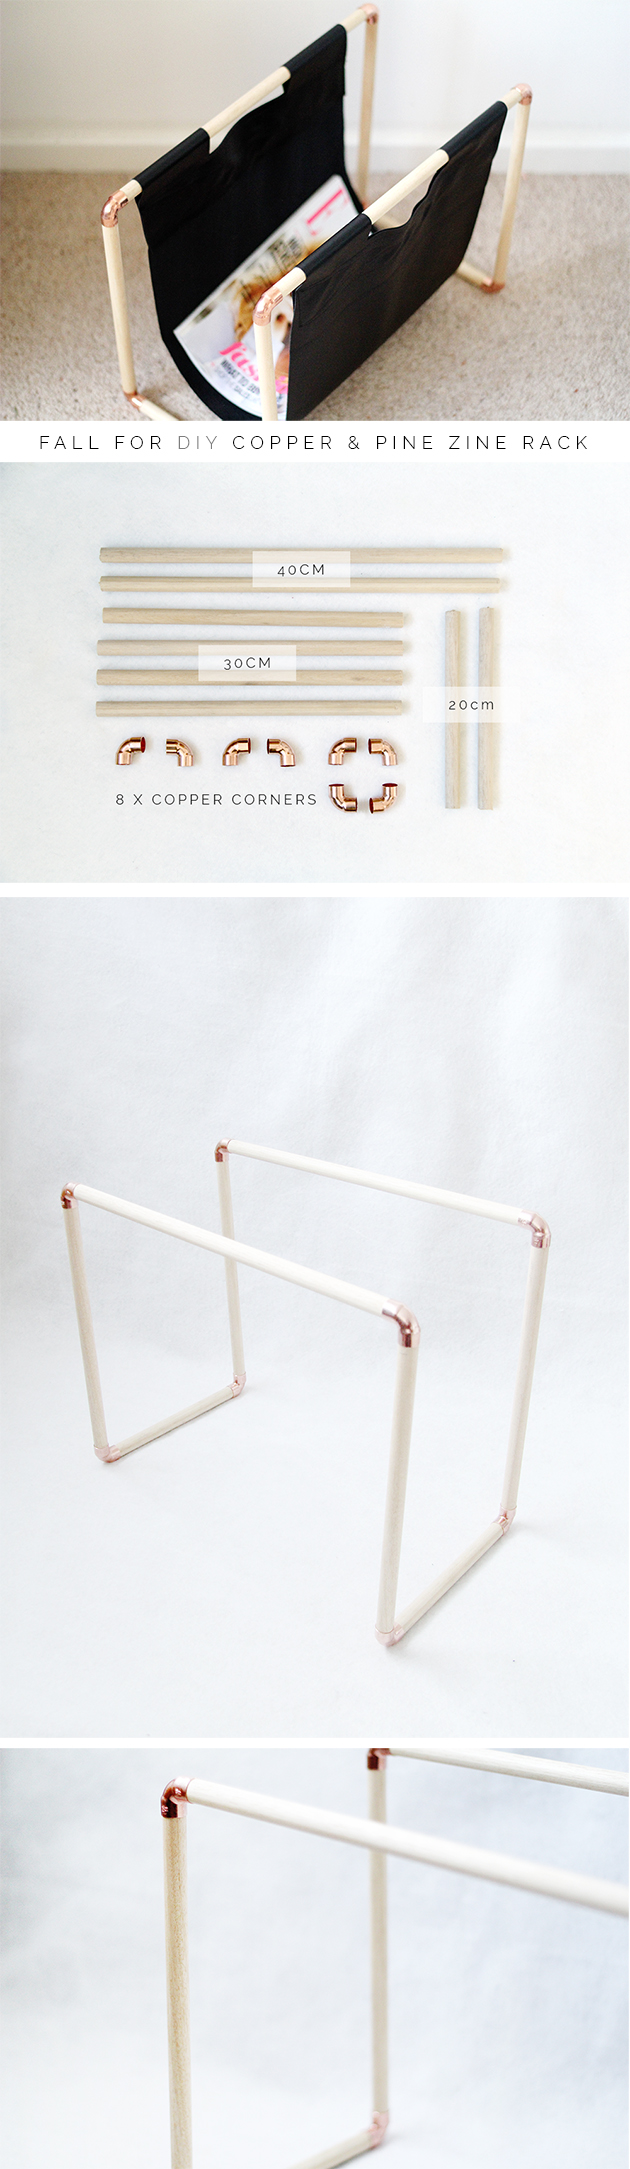 copper-pipe-magazine-rack-fall-for-diy-blog